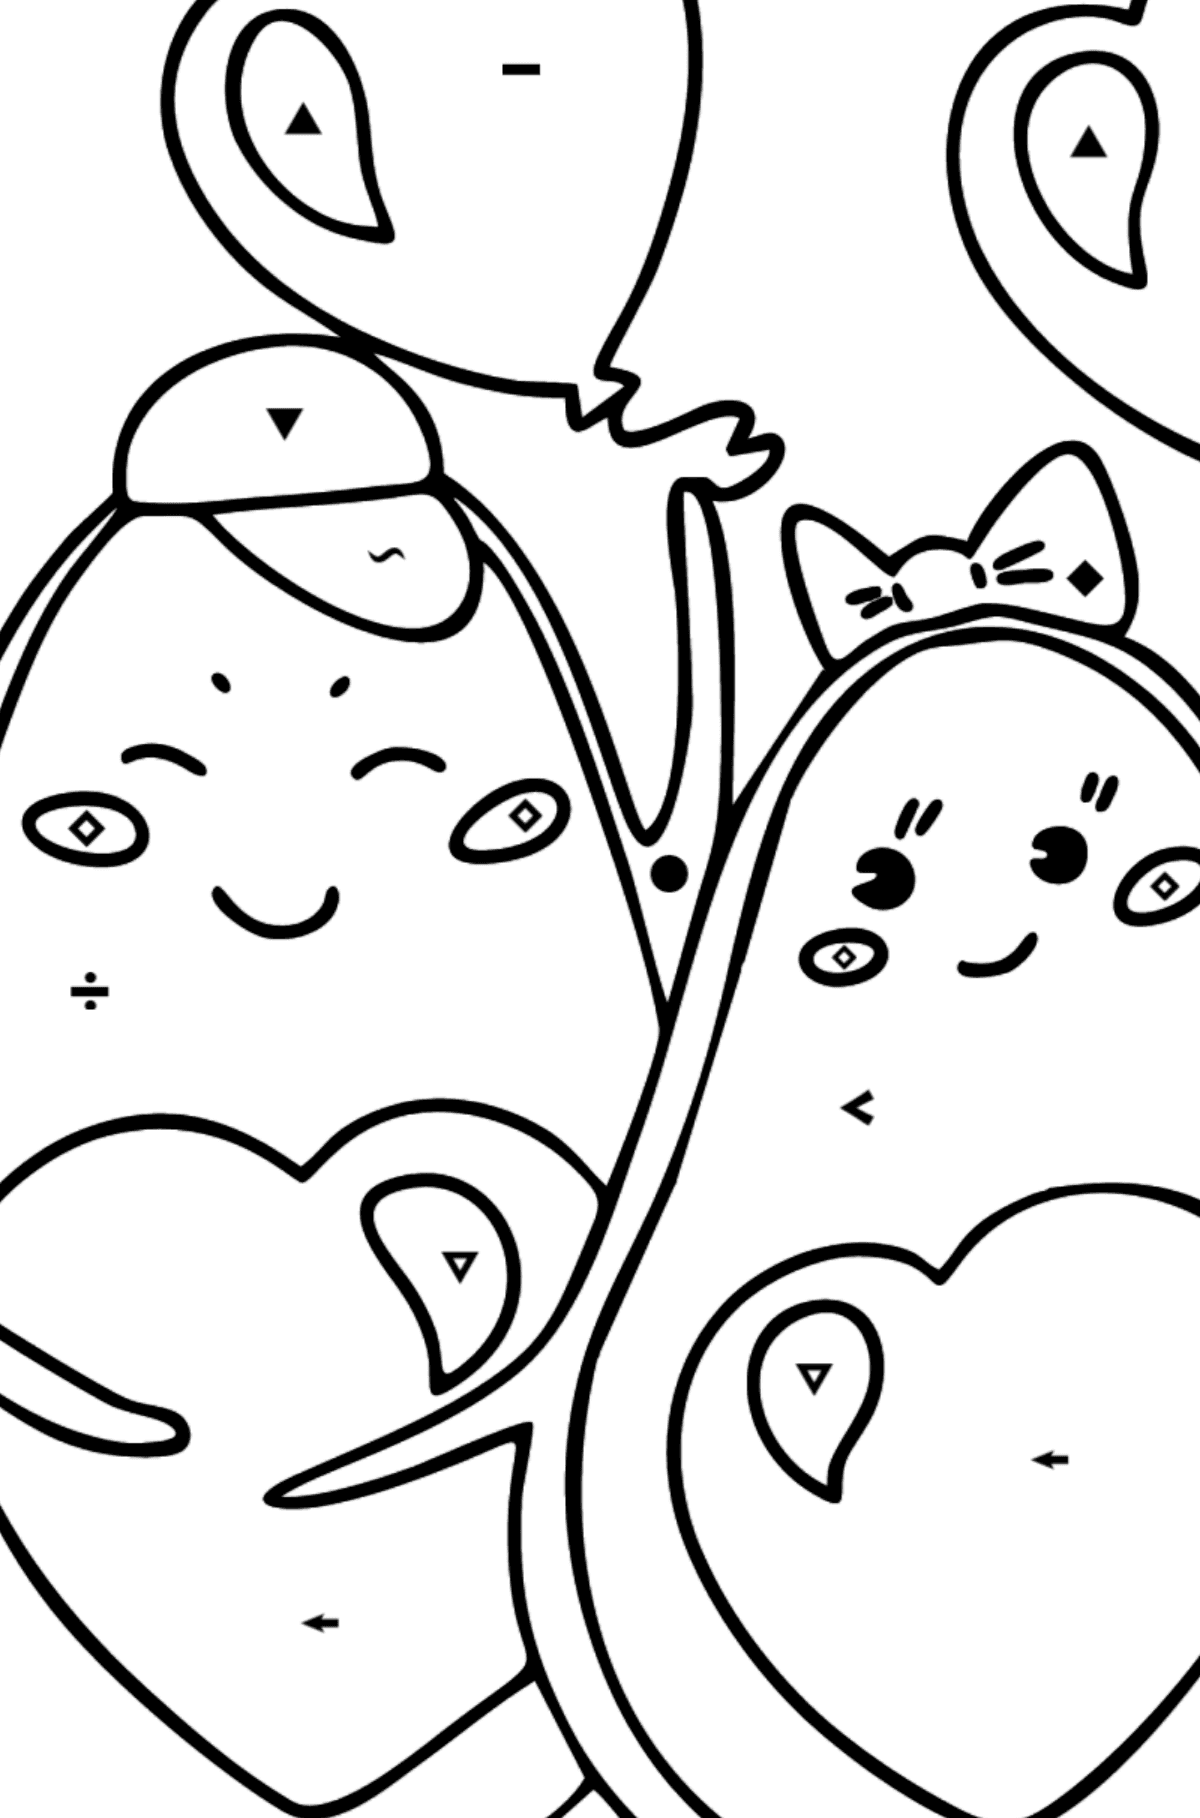 Avocado in Love coloring page - Coloring by Symbols for Kids